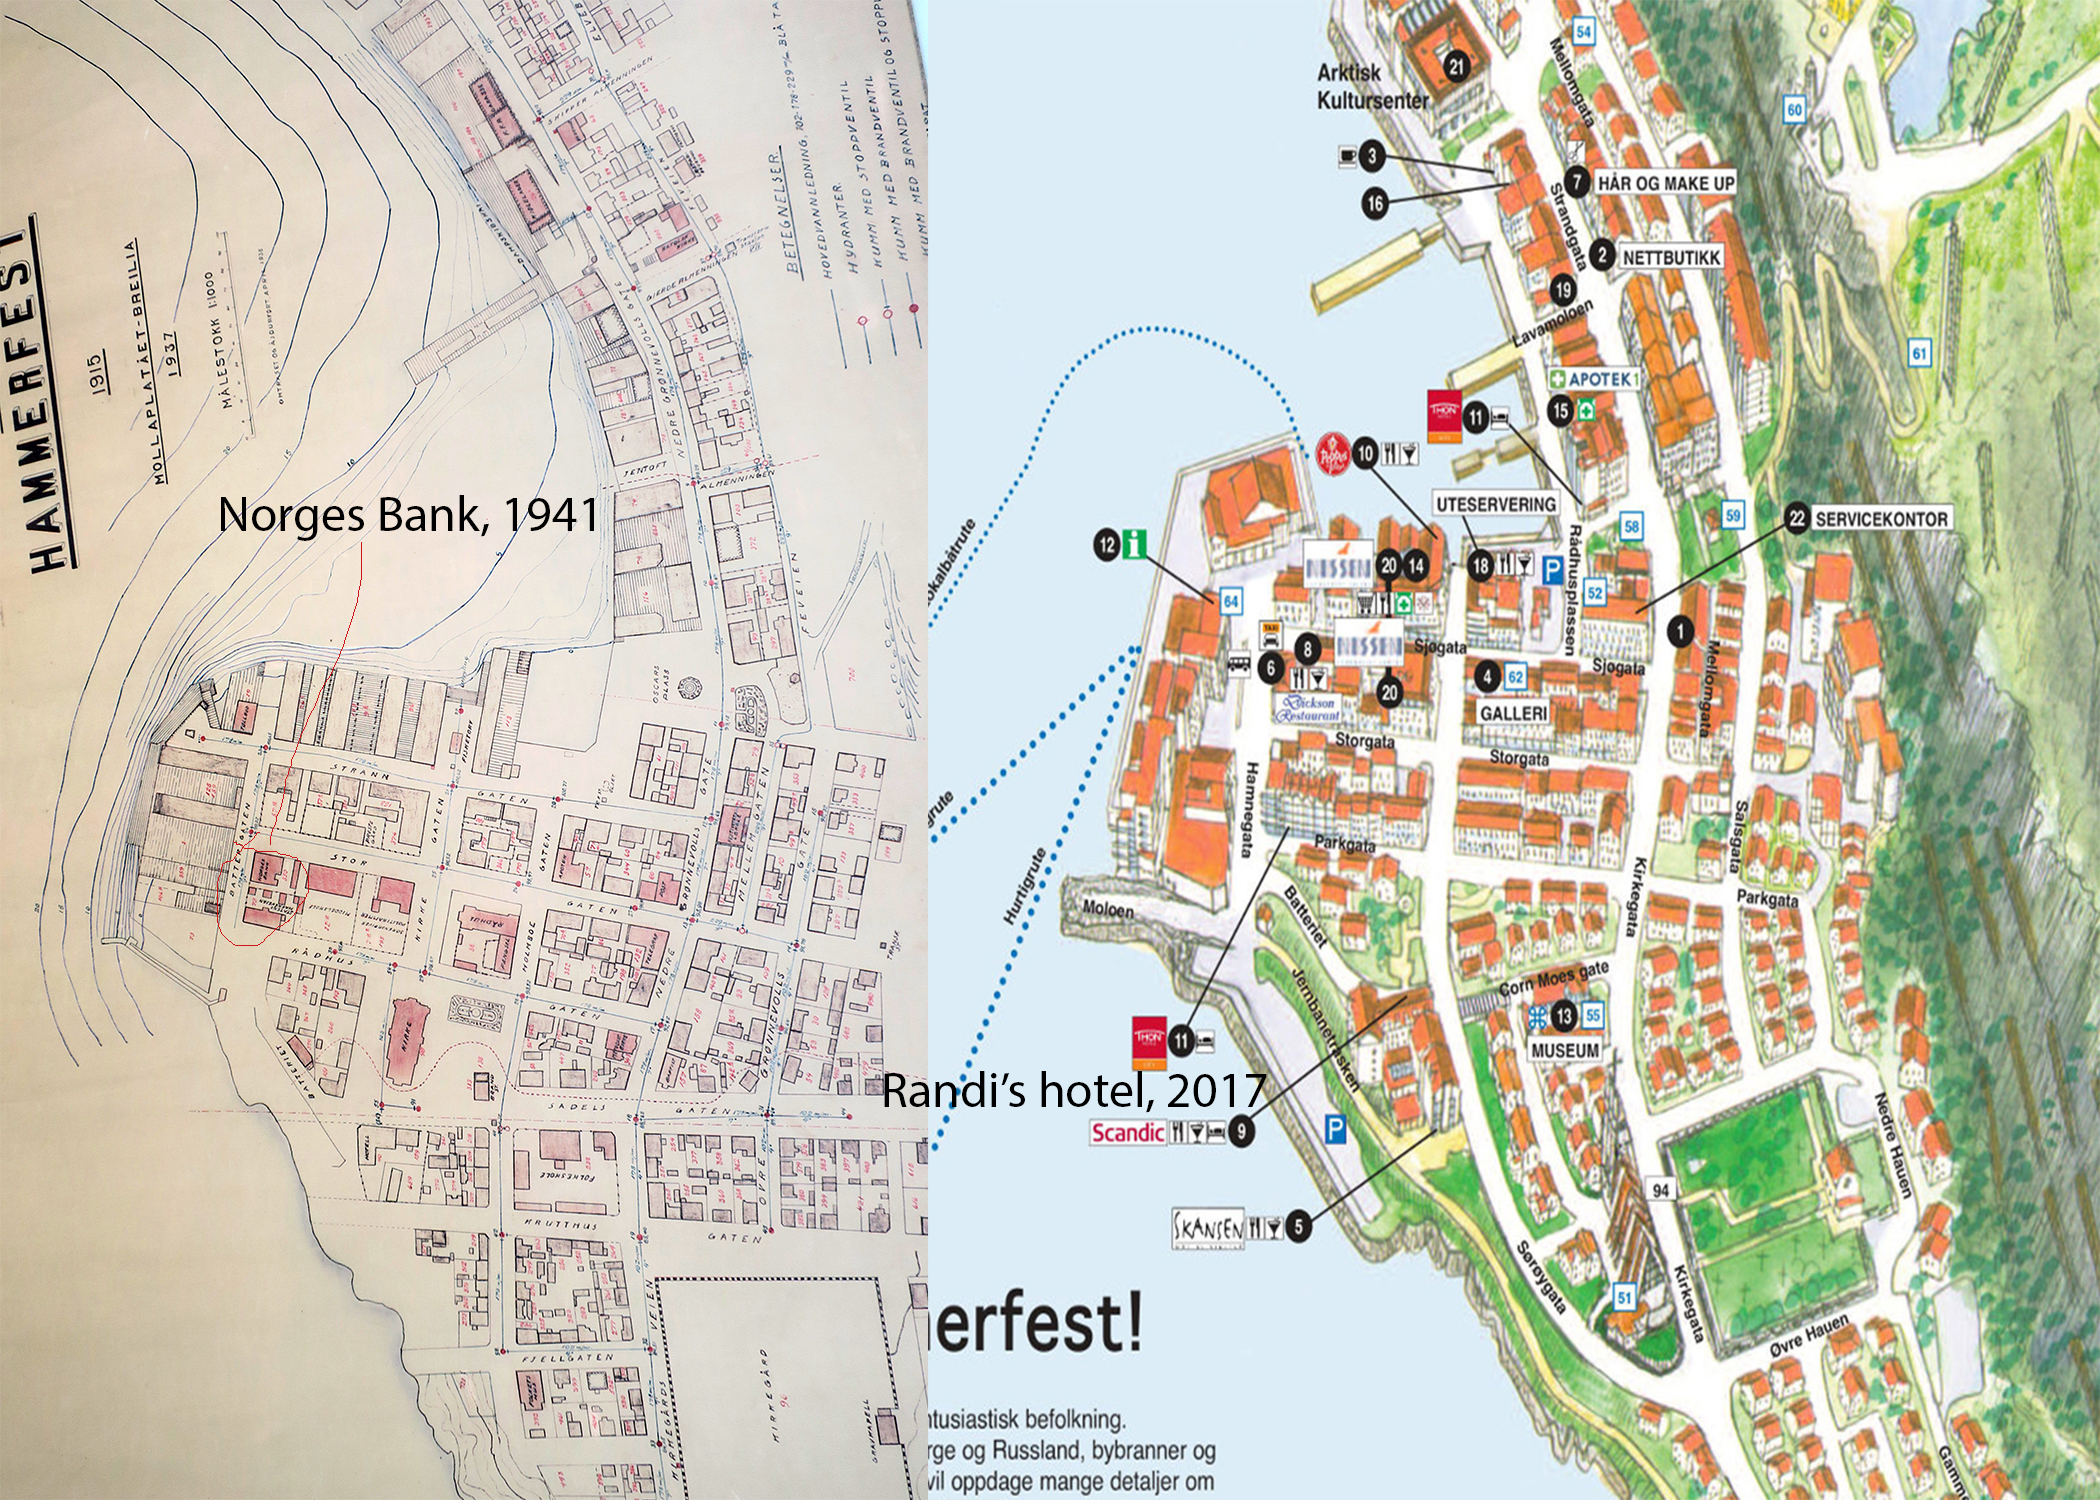 Left: Map of Hammerfest, 1937 (circled where Norges Bank was located, and Right: Modern map